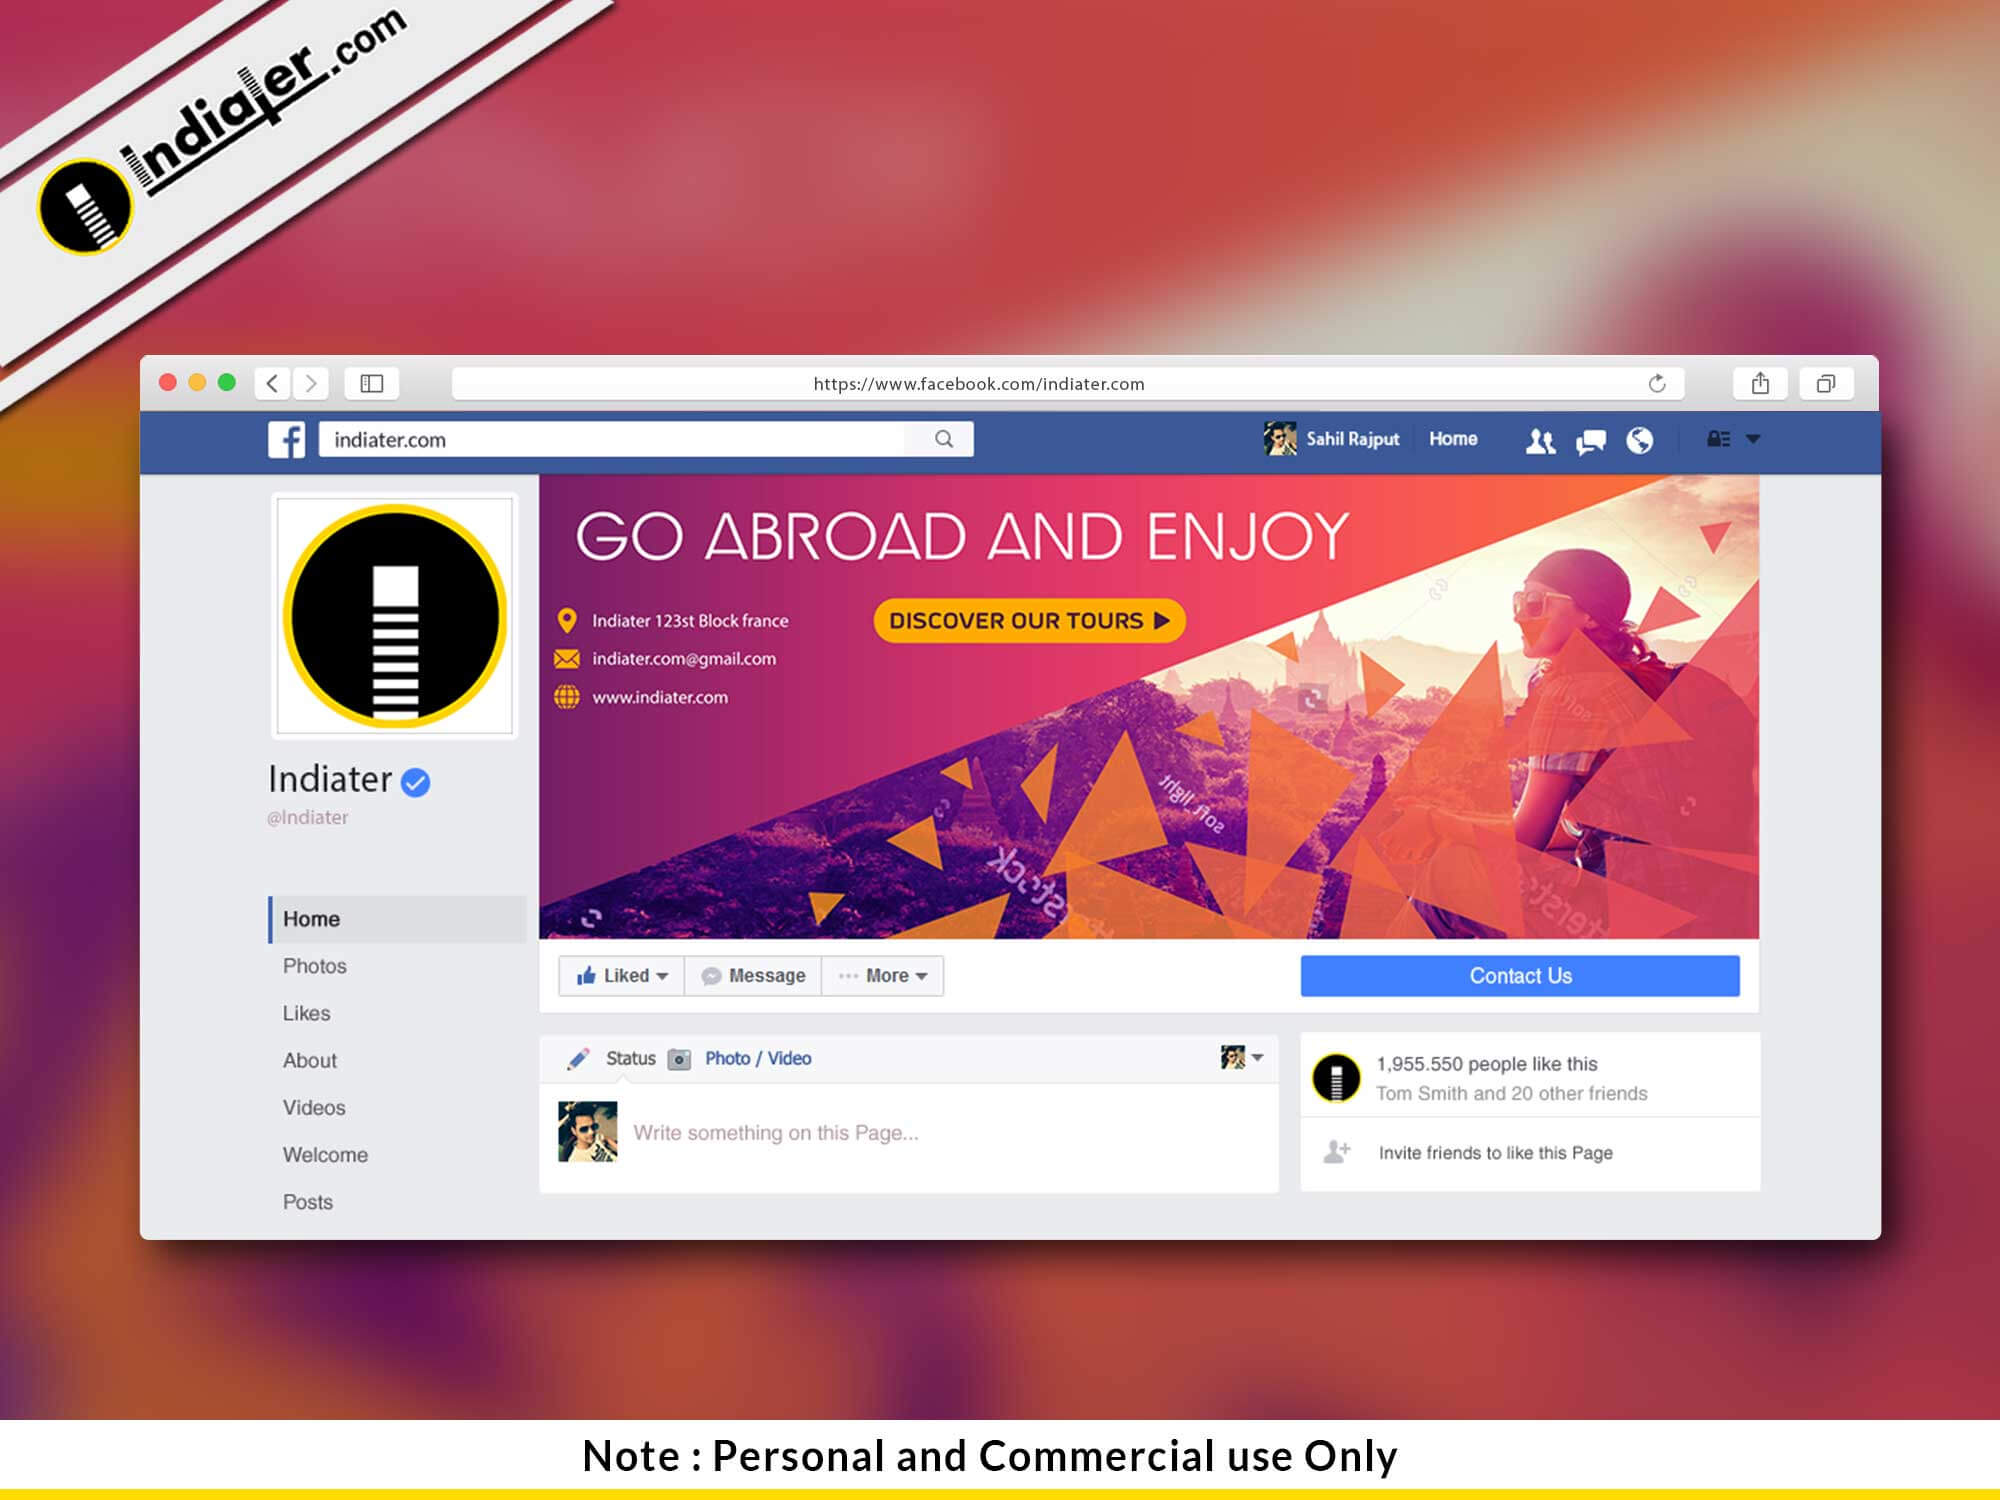 002 Free Travel Facebook Cover Psd Template Photoshop Within Photoshop Facebook Banner Template